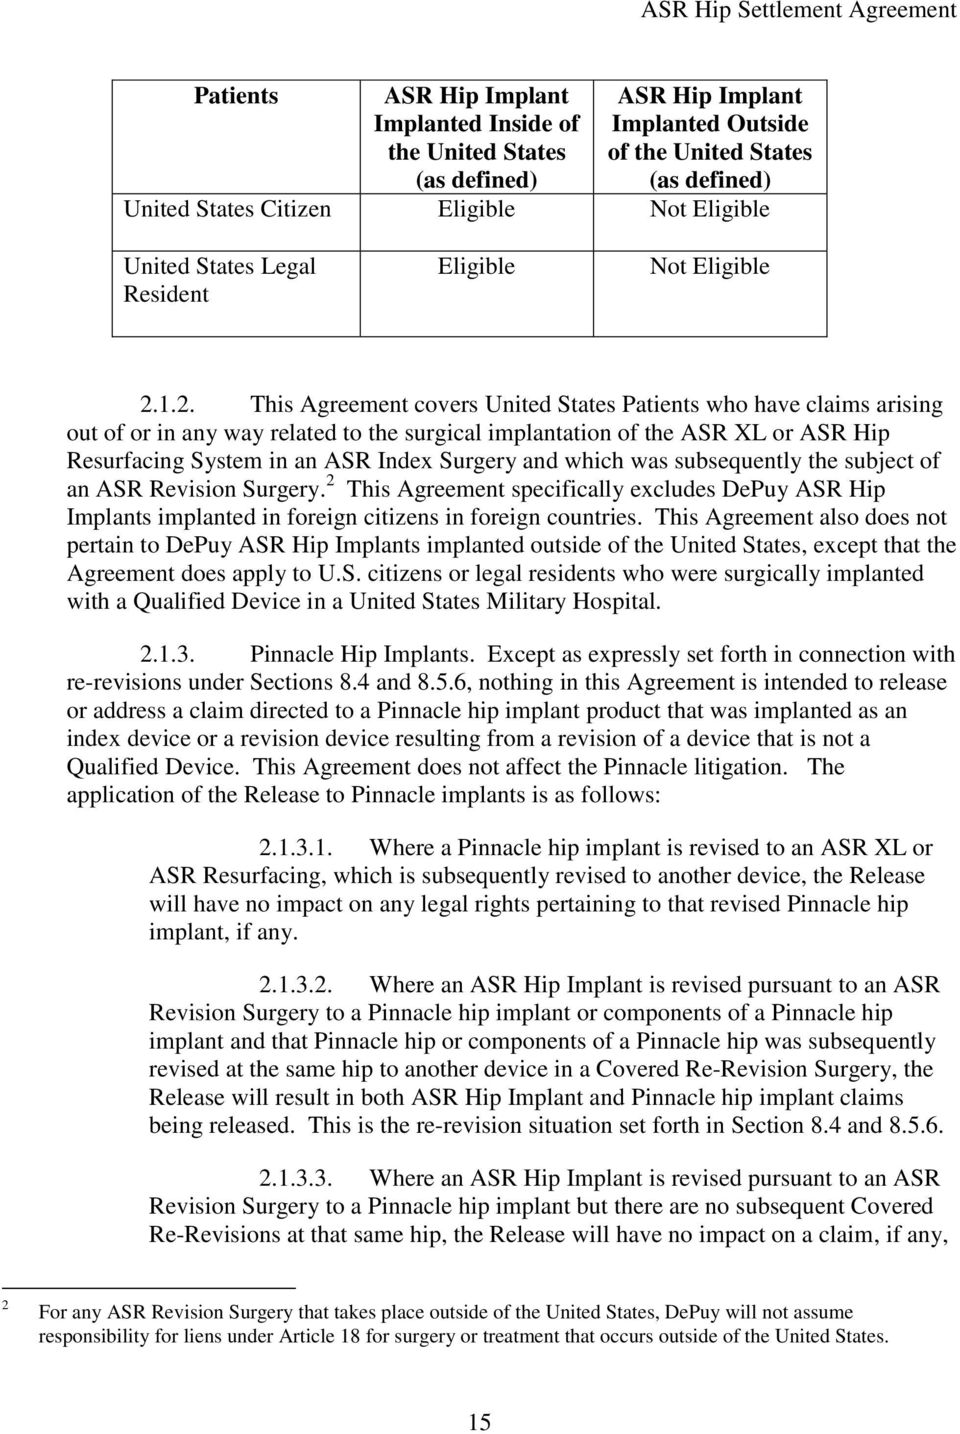 1.2. This Agreement covers United States Patients who have claims arising out of or in any way related to the surgical implantation of the ASR XL or ASR Hip Resurfacing System in an ASR Index Surgery